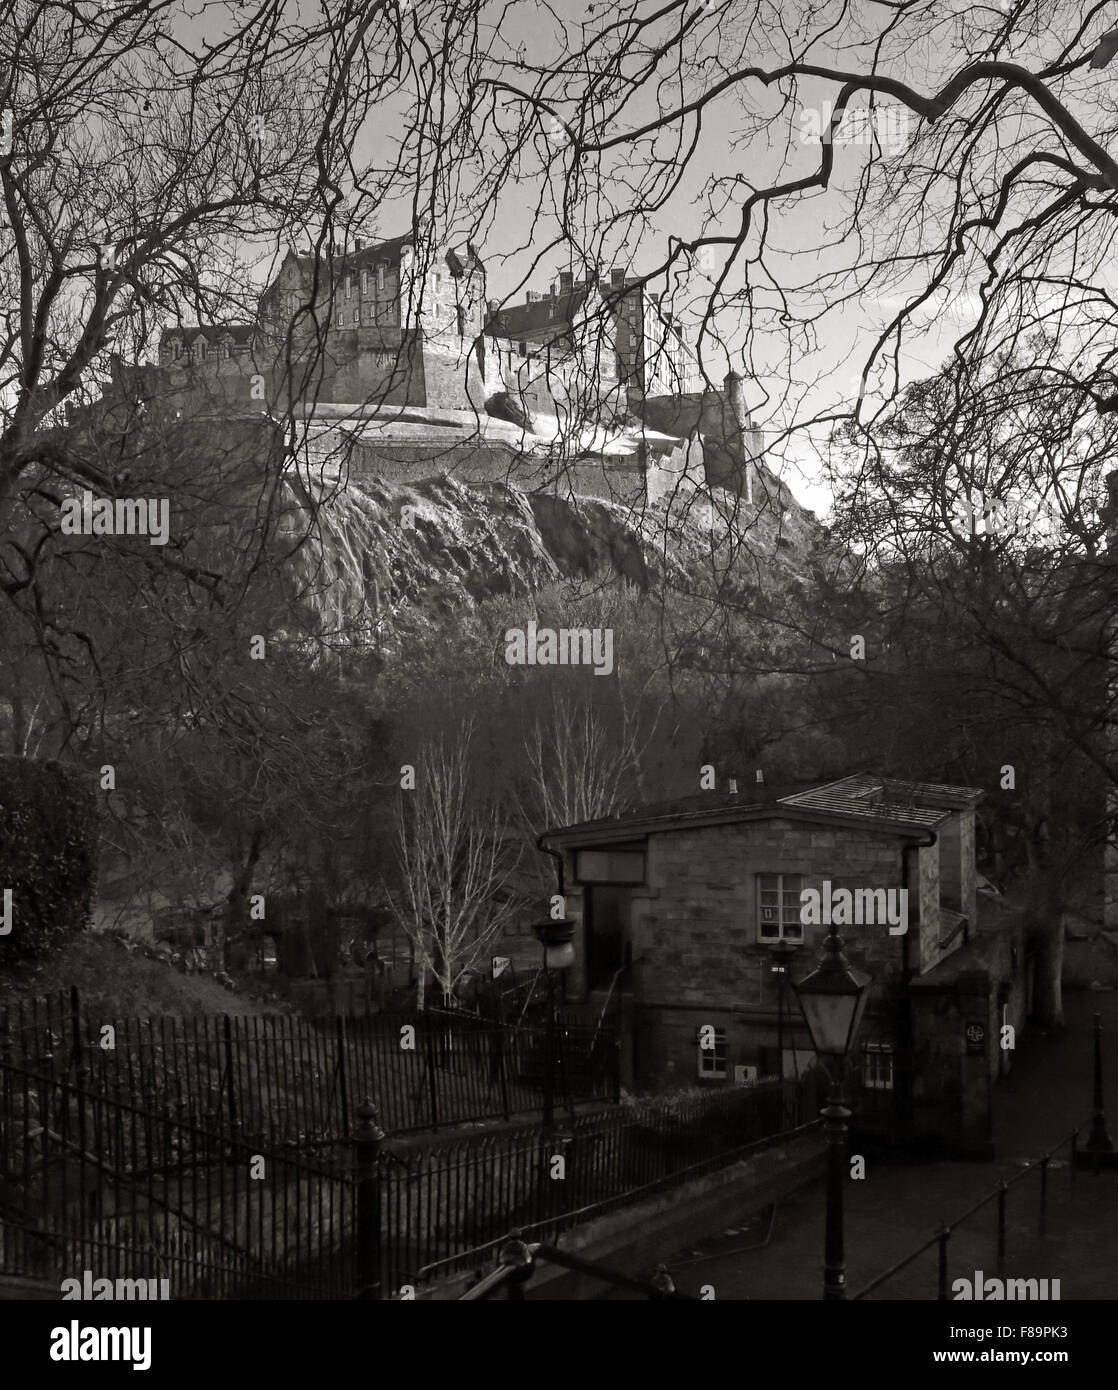 United,Kingdom,city,centre,center,history,historic,seat,of,power,autumn,December,Xmas,Christmas,through,trees,tree,saint,United,Kingdom,Cuthberts,graveyard,grave,yard,cemetery,sunset,sun,set,sunny,blue,sky,monochrome,black,white,dramatic,Edinburgh Castle,in Winter,Blue sky,Black and White,GotonySmith,hilltop,historic,history,historical,icon,iconic,kingdom,landmark,landmarks,lowlands,lothian,medieval,monument,old,outcrop,rock,rocky,Royal,family,scotch,scotland,scots,scottish,sight,sights,scenic,sightseeing,skies,sky,skyline,summer,sun,sunny,sunshine,stronghold,tour,tattoo,tourism,tourists,town,towns,towering,uk,united,white,unesco world heritage,Unesco,old town,Edinburgh Castle,dramatic sky,moody,mody sky,dramatic sky,summer,blue,blue sky,lush,green,trees,vegetation,clouds,Edinburg,Castel,Scots,Scottish,scotland,nationalistic,stone,tour,travel,tourist,attraction,Royal Family,buy pictures of Edinburgh,Buy Pictures of,Buy Images Of,Edinburgh Castle